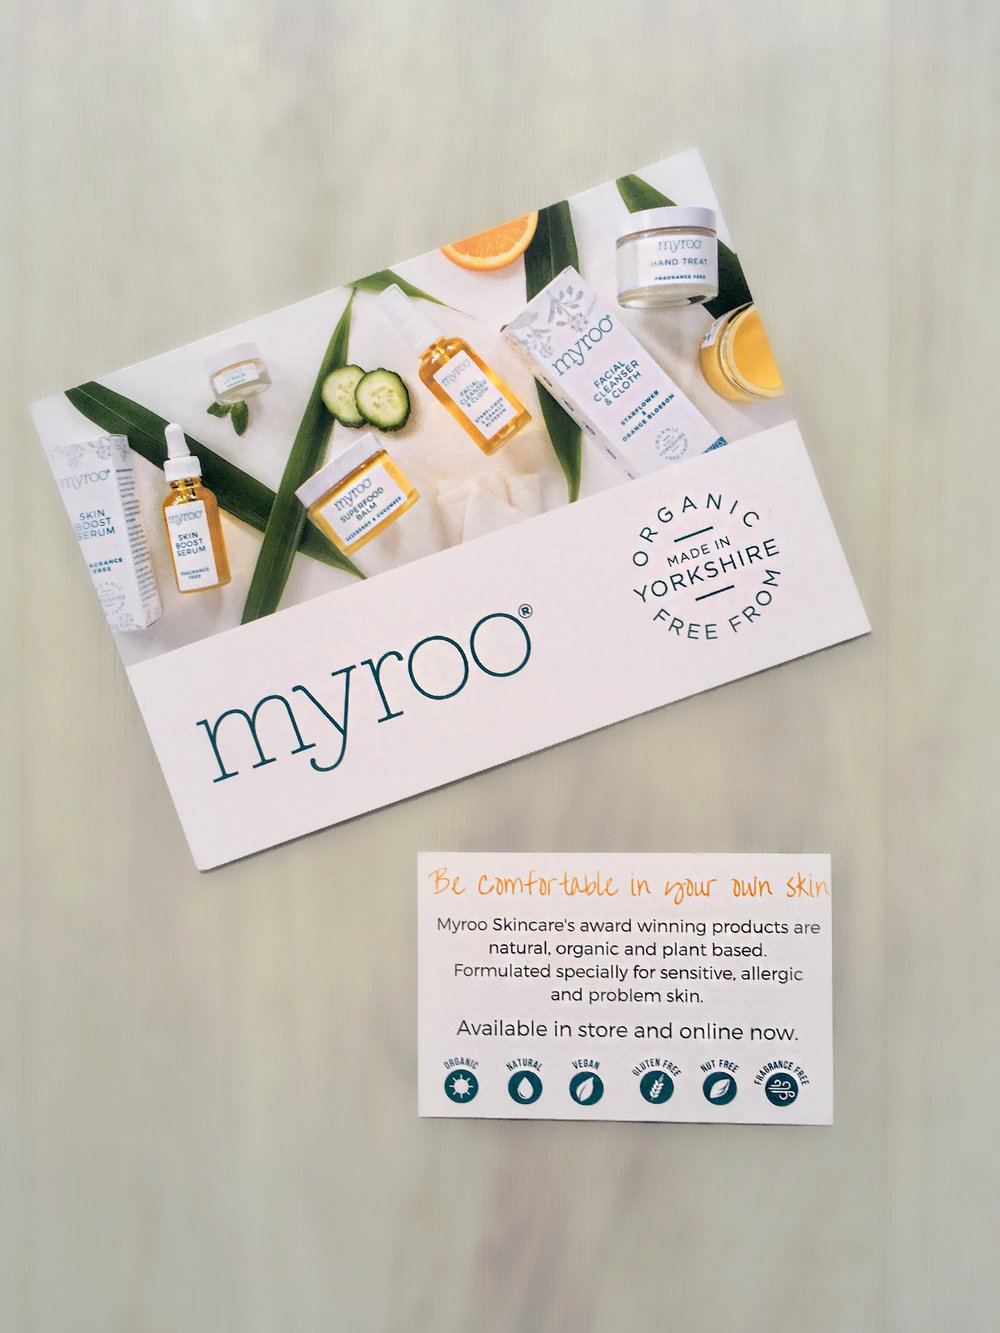 Check out all the Myroo products on their website  www.myroo.co.uk  Or keep up to date with their Facebook page  Myrooskincare